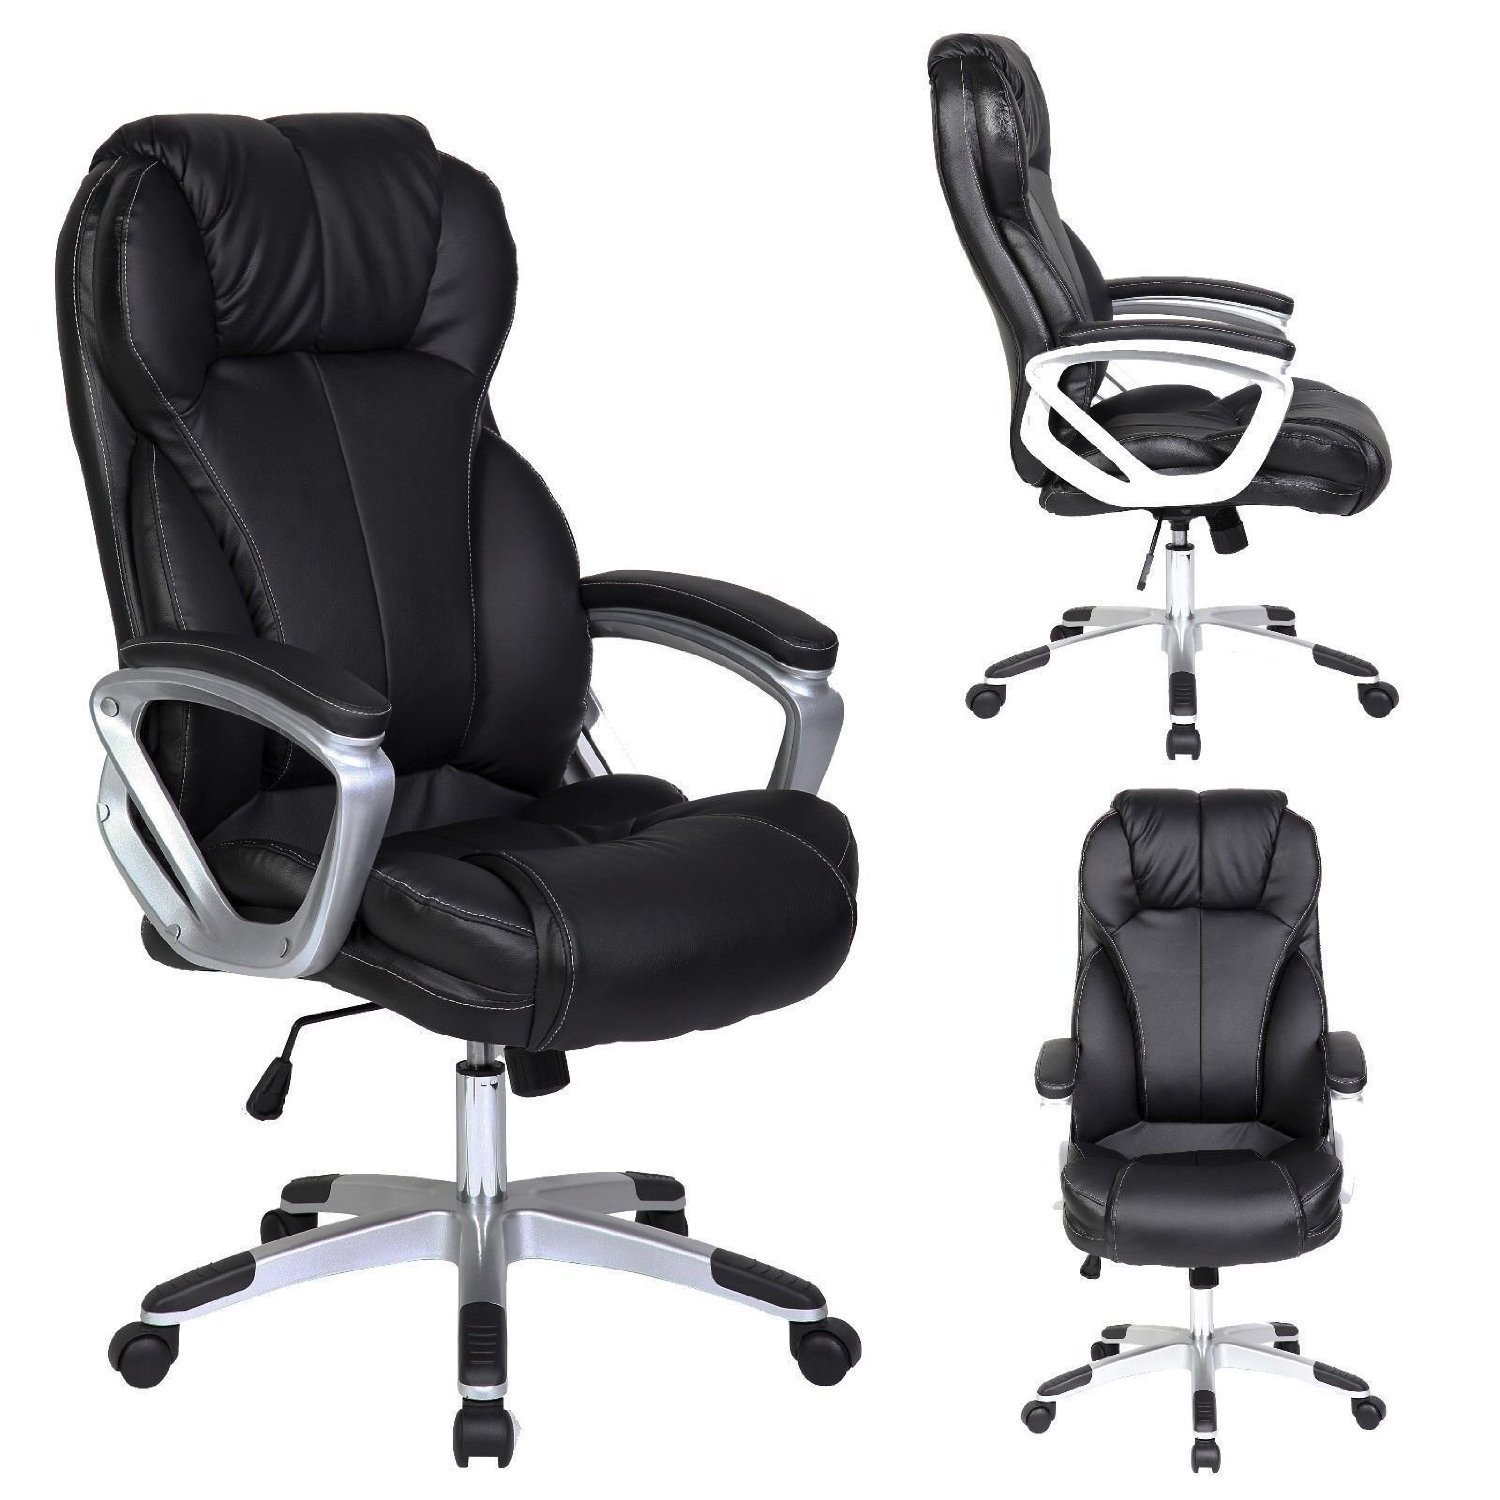 Best Ergonomic Office Chairs For Tall People - 2xhome - Black - Deluxe Professional PU Leather Review